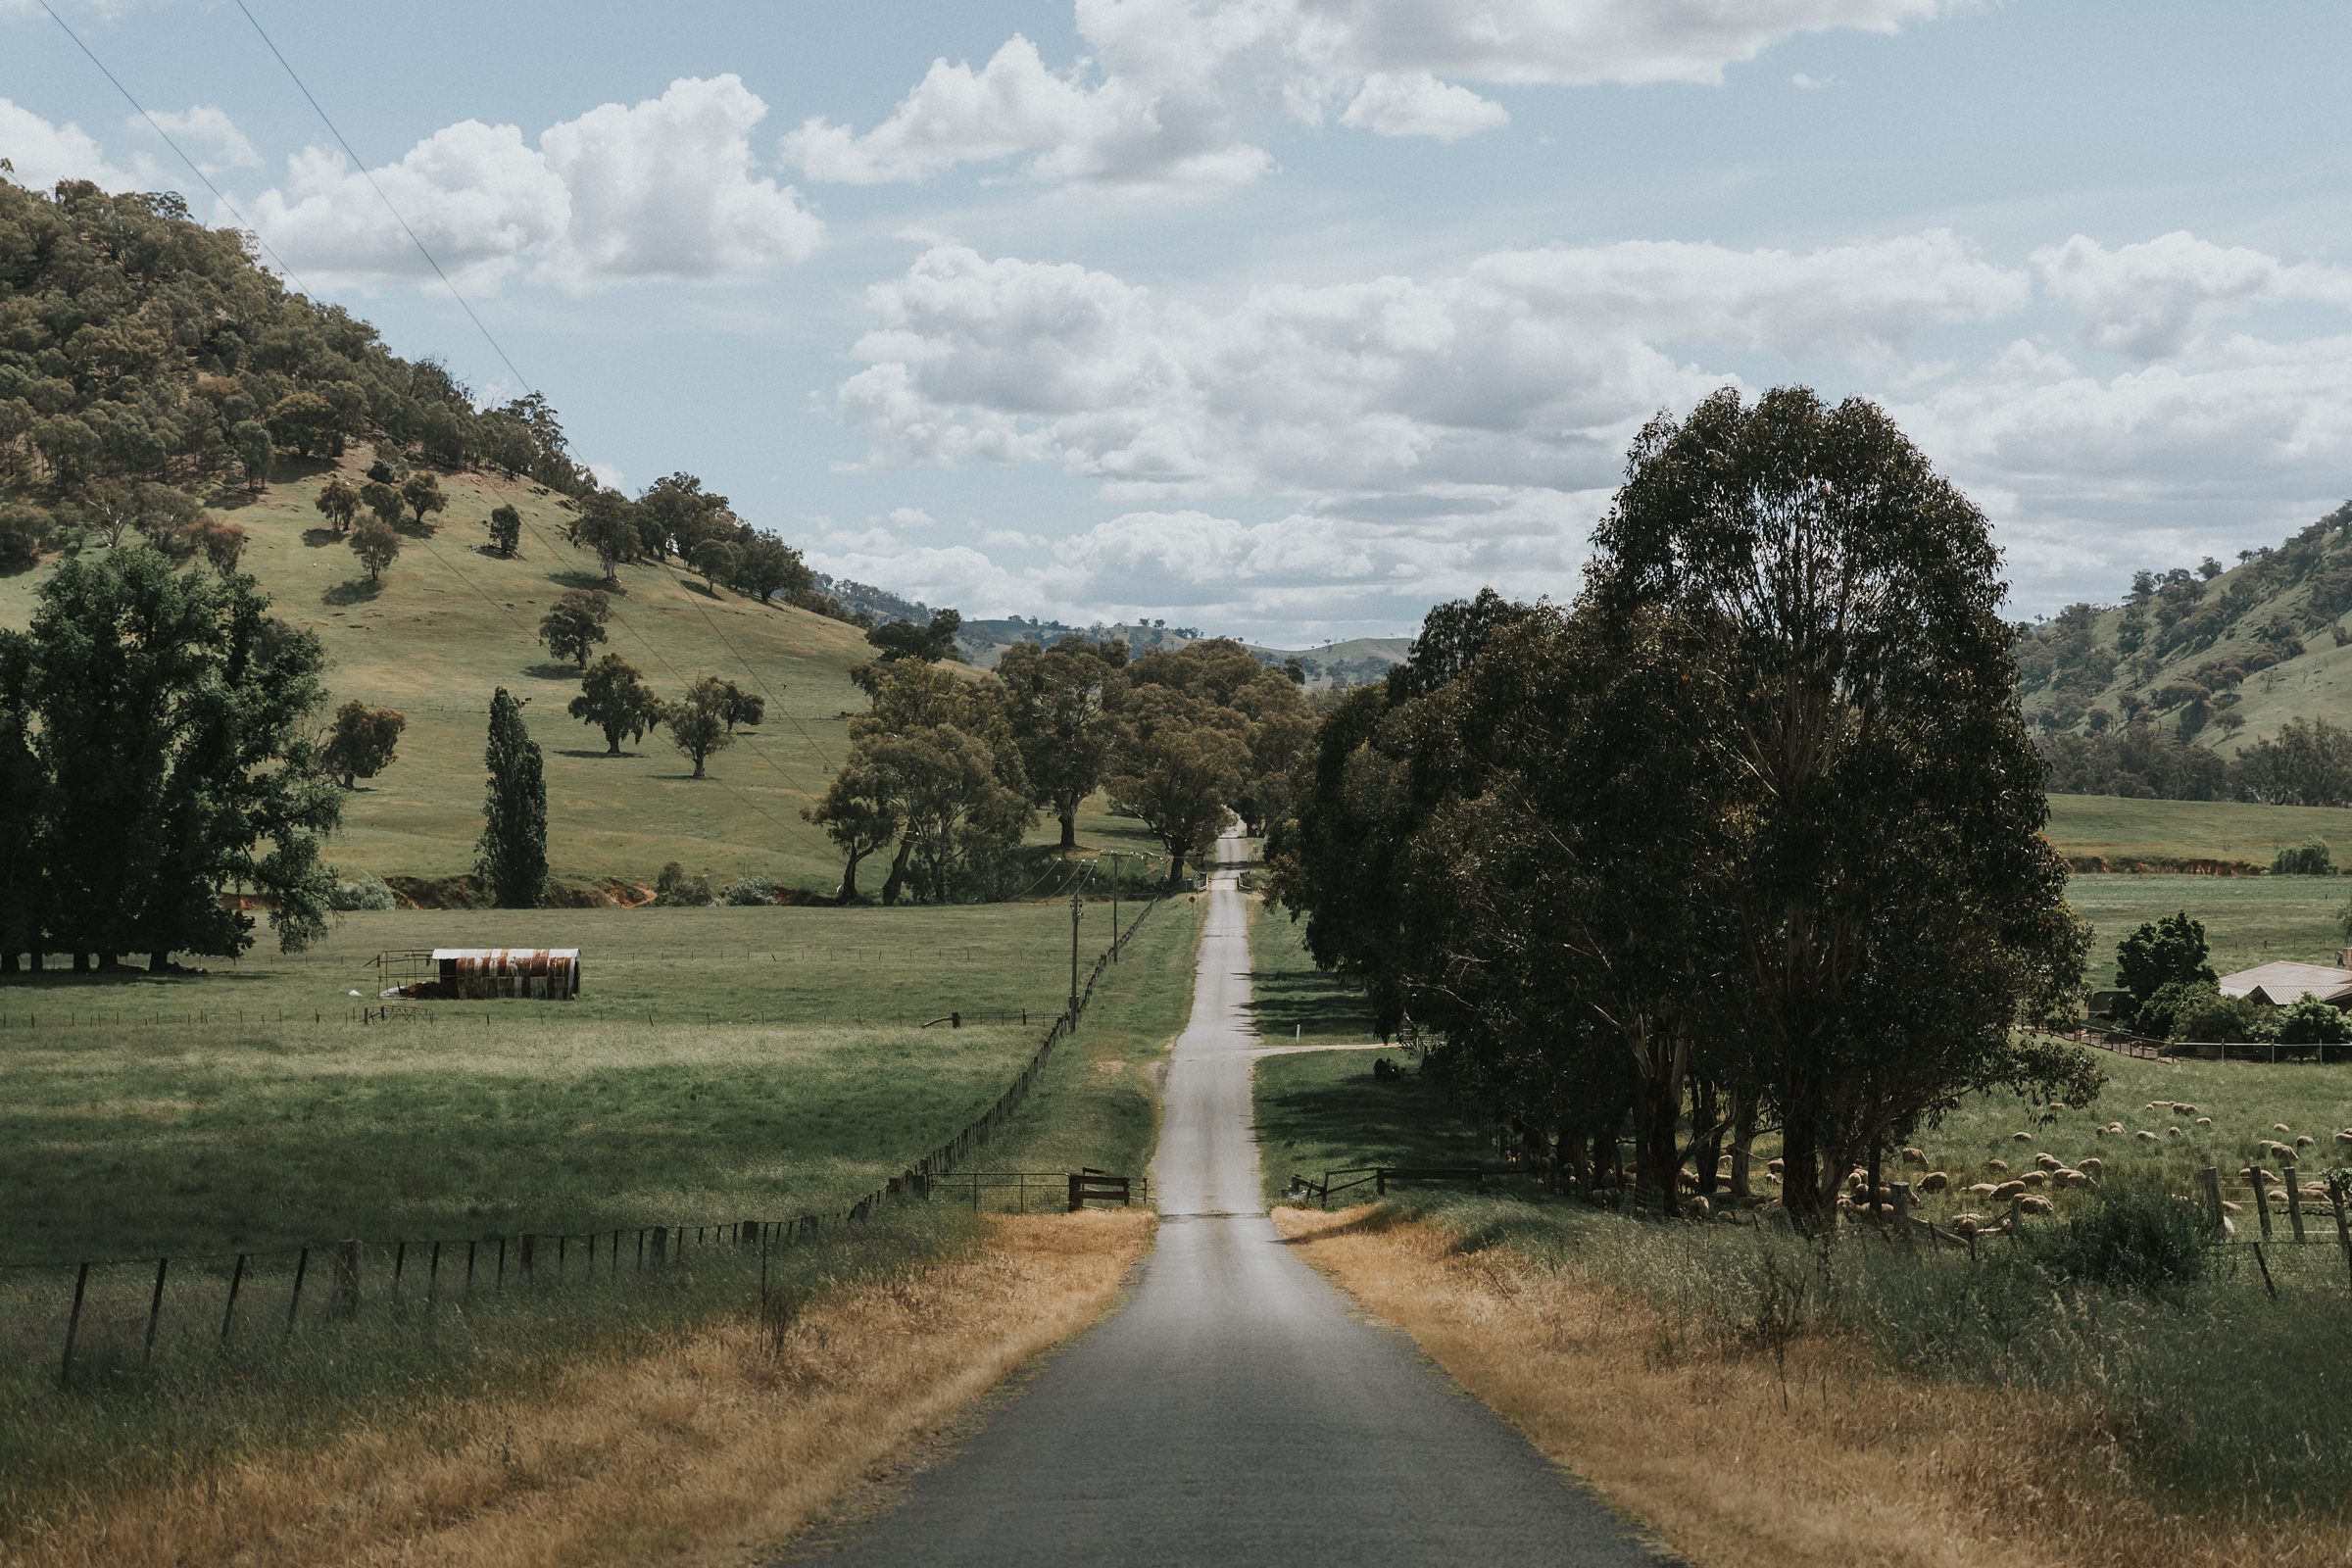 country road leading to nimbo fork lodge in tumut